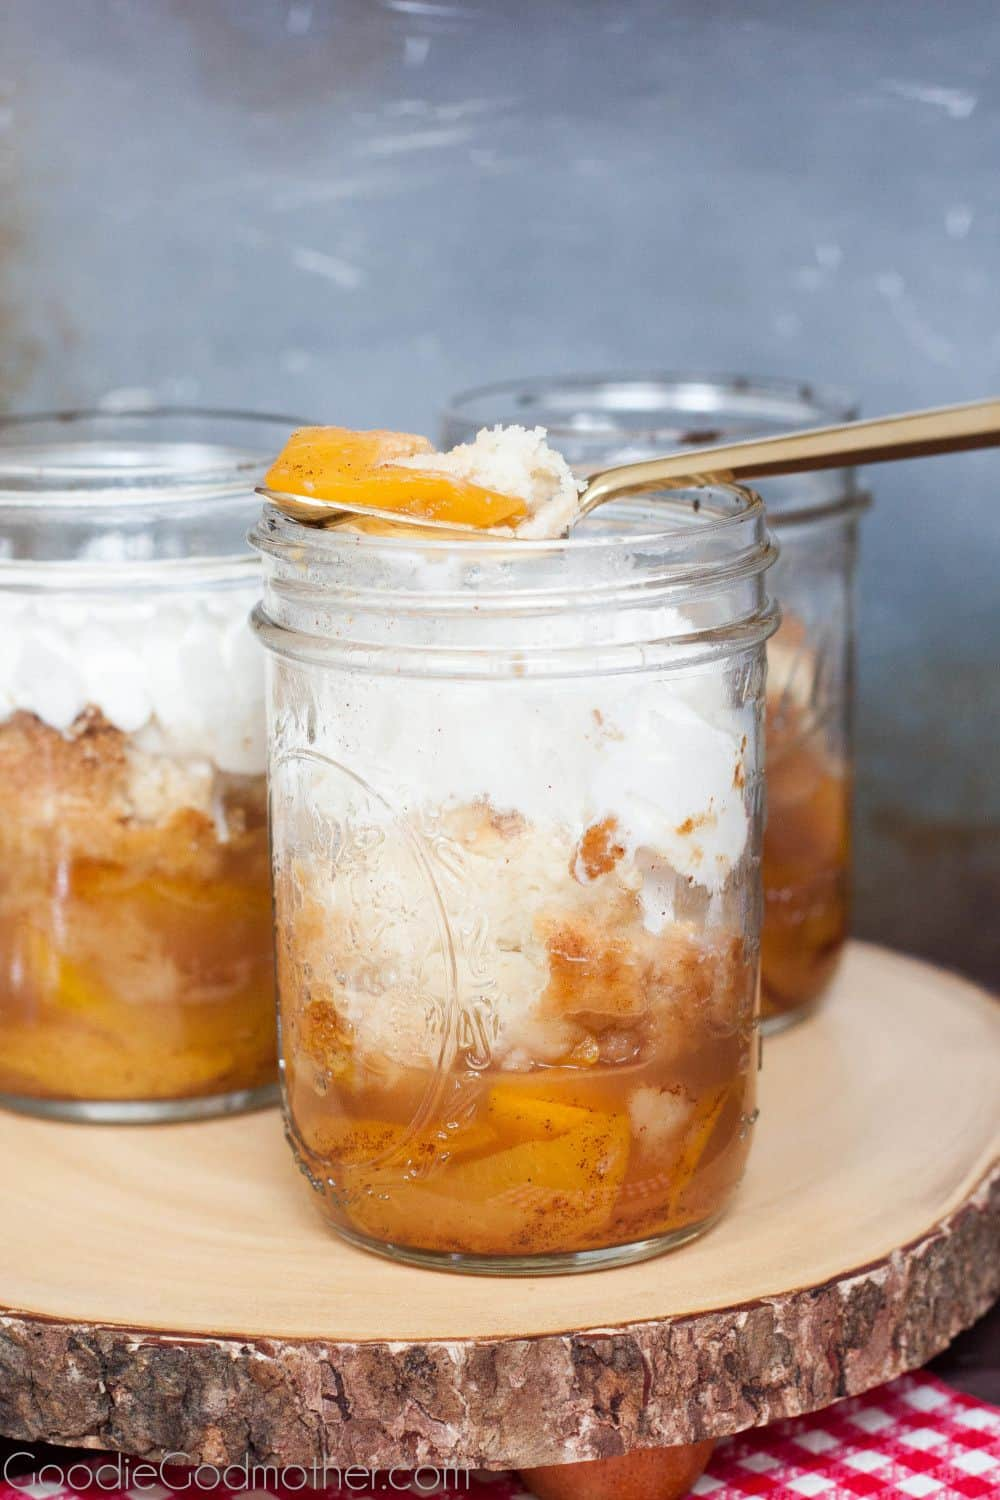 Fresh Peach Cobbler  Goodie Godmother  A Recipe and